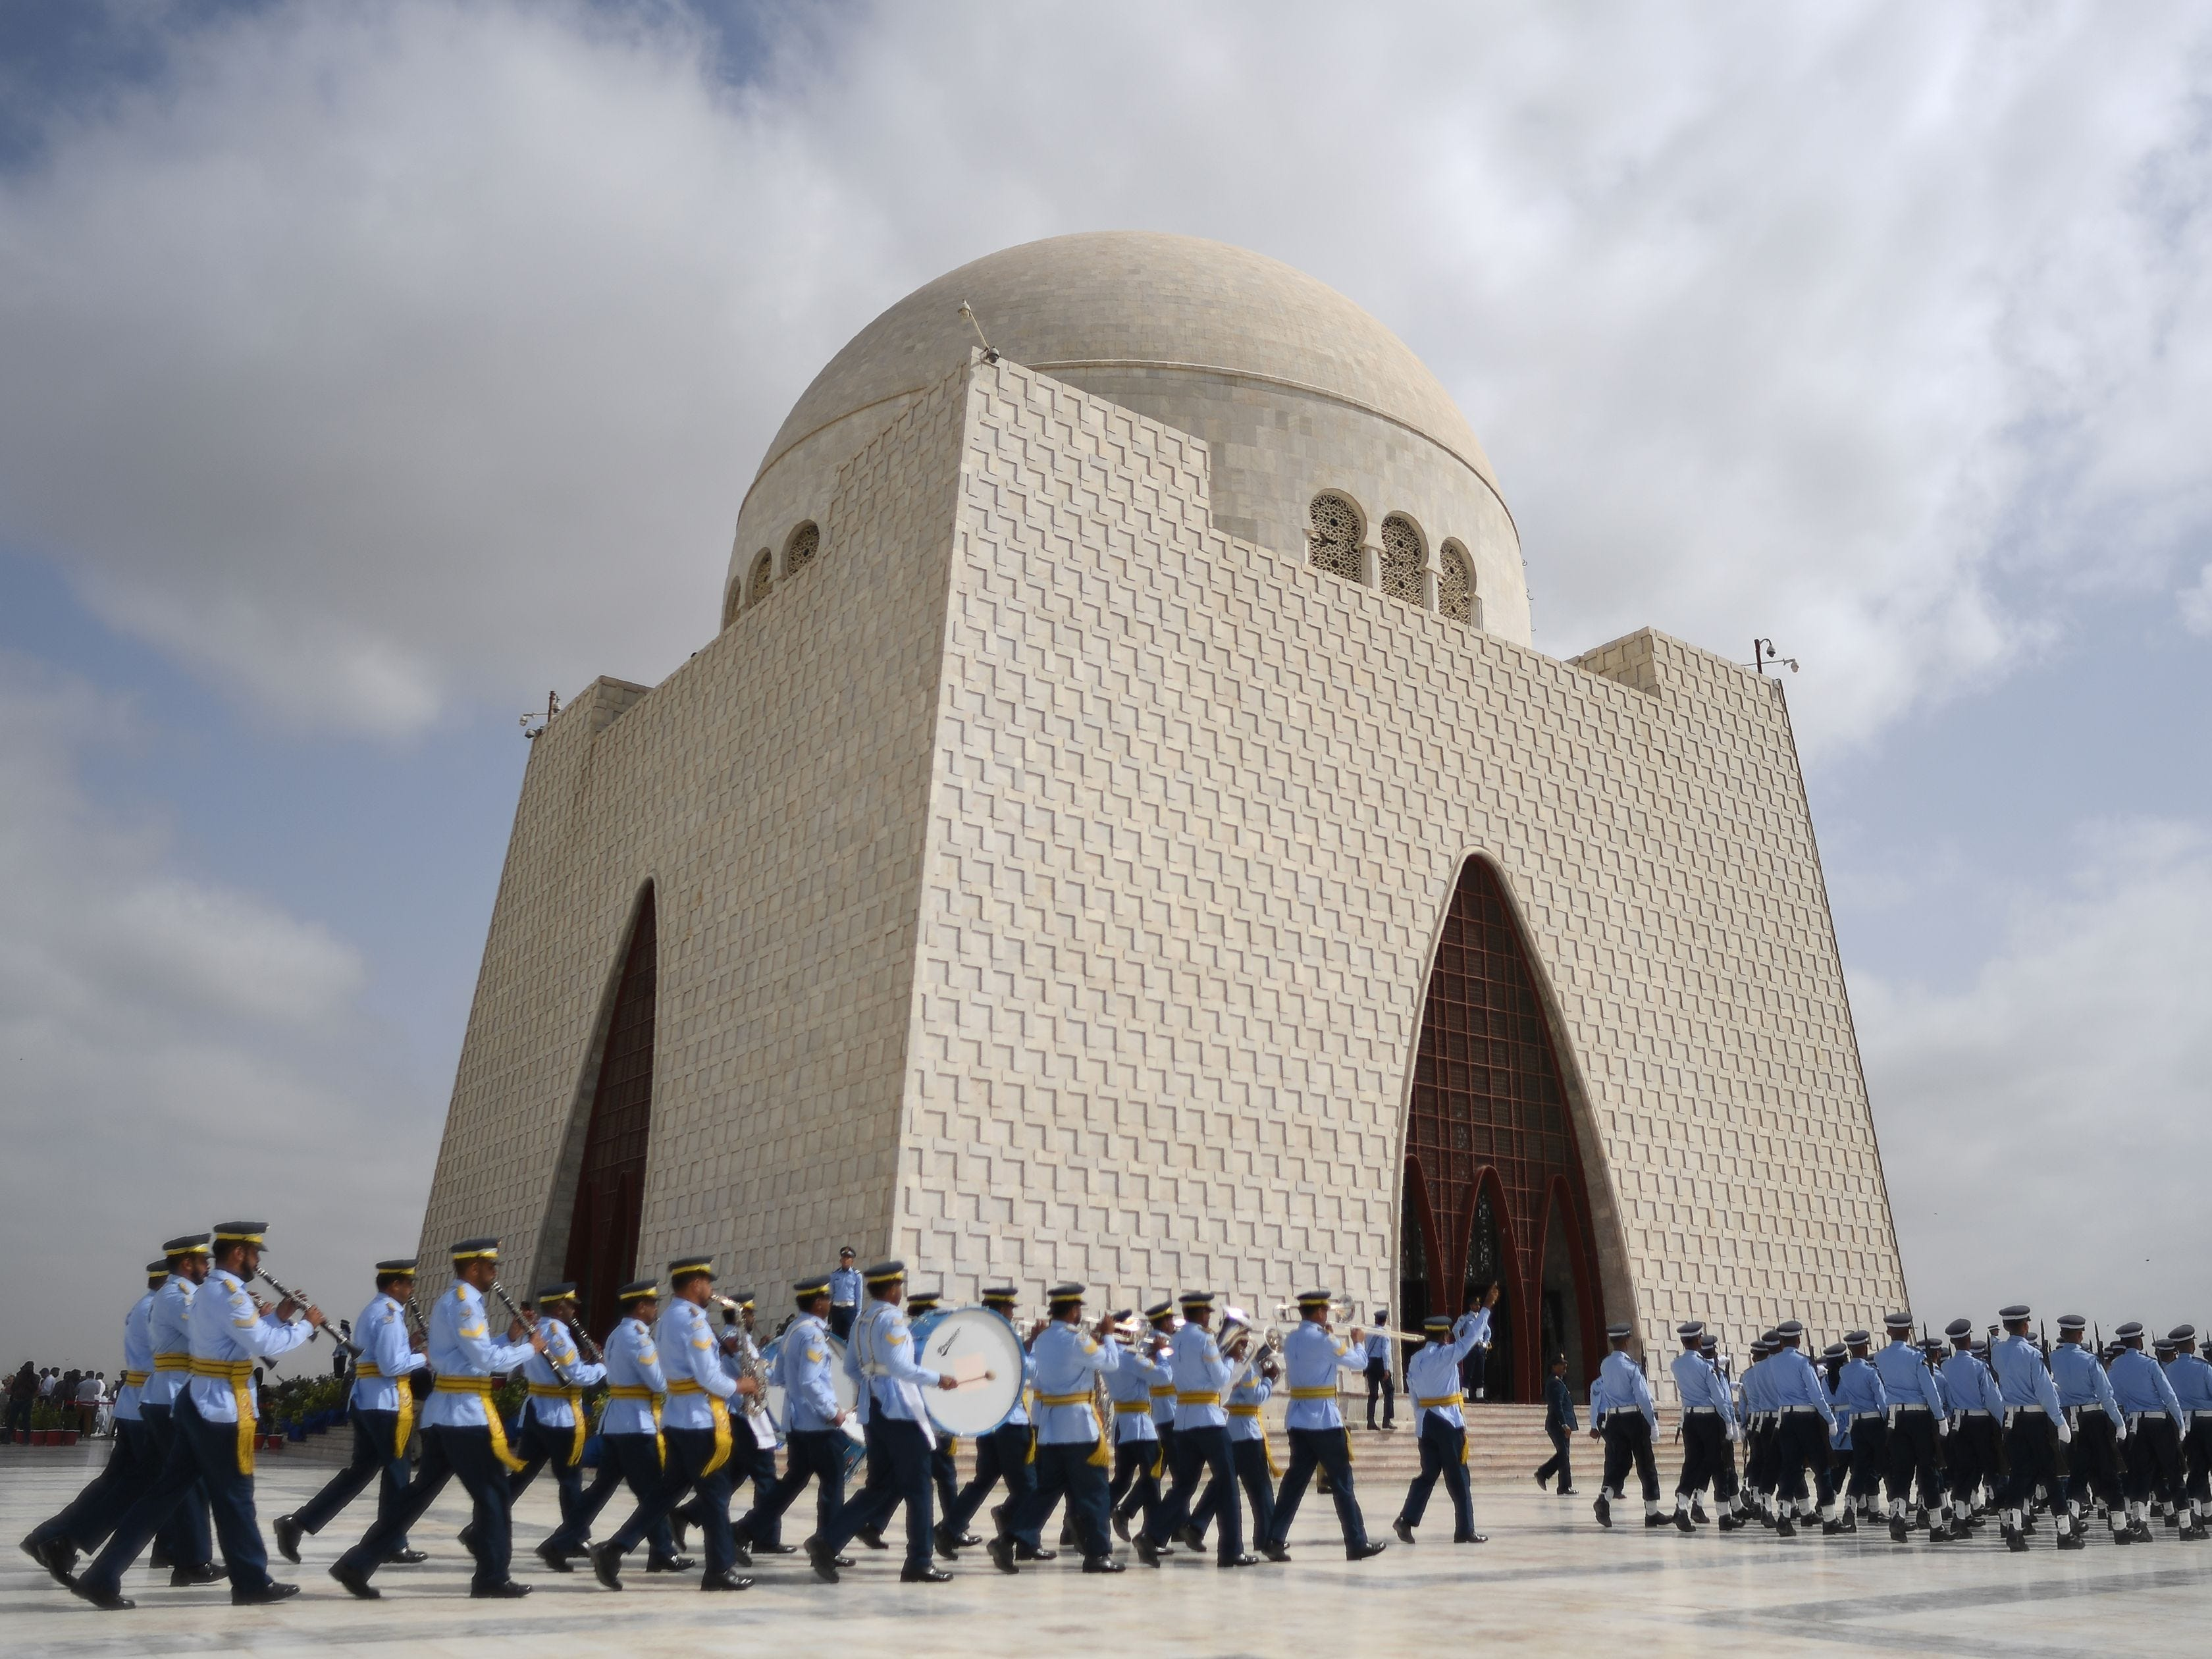 Pakistan Air Force cadets march next to the mausoleum of the country's founder, Mohammad Ali Jinnah, to mark the country's Defense Day in Karachi on Sept. 6, 2018. Pakistan celebrated the 53rd anniversary of its second war with arch-rival India weeks after the two nuclear powers faced off in some of their deadliest skirmishes in over a decade. The major fighting of the war took place between August and September 1965, with both sides claiming victory after it ended in stalemate following the intervention of the United States and Soviet Union.